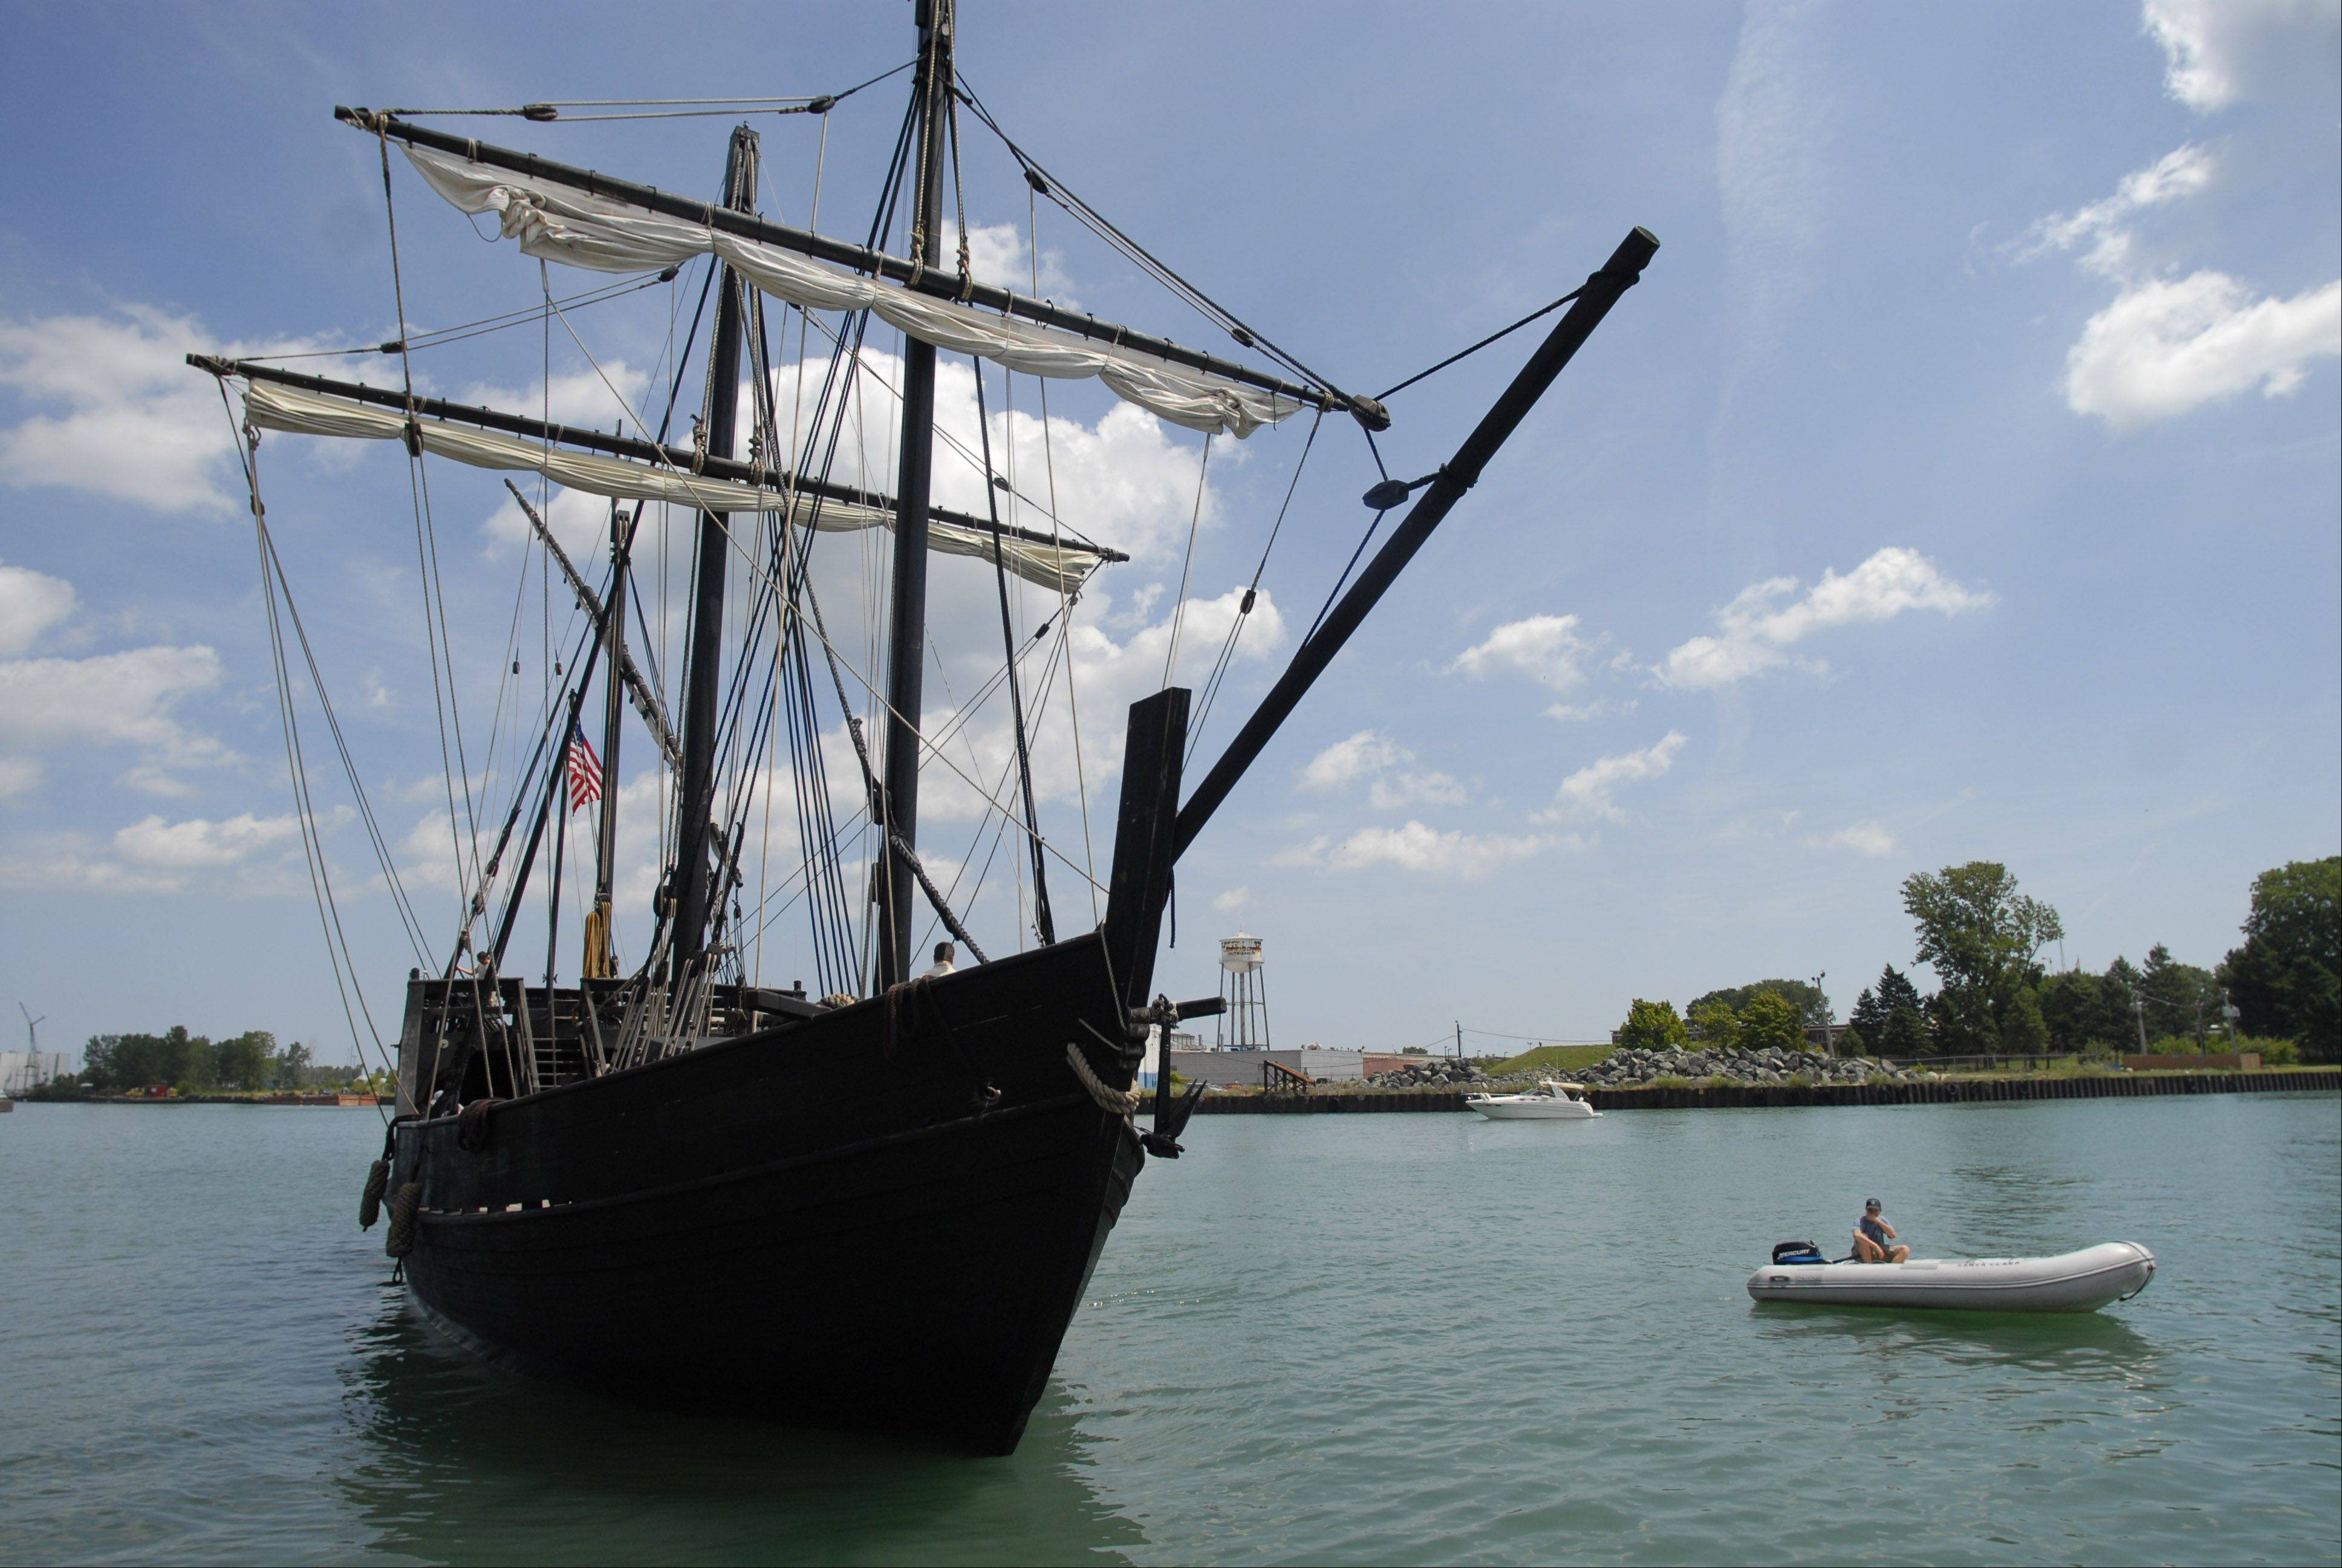 Replicas of Columbus' ships will come to Waukegan Harbor July 26-30.